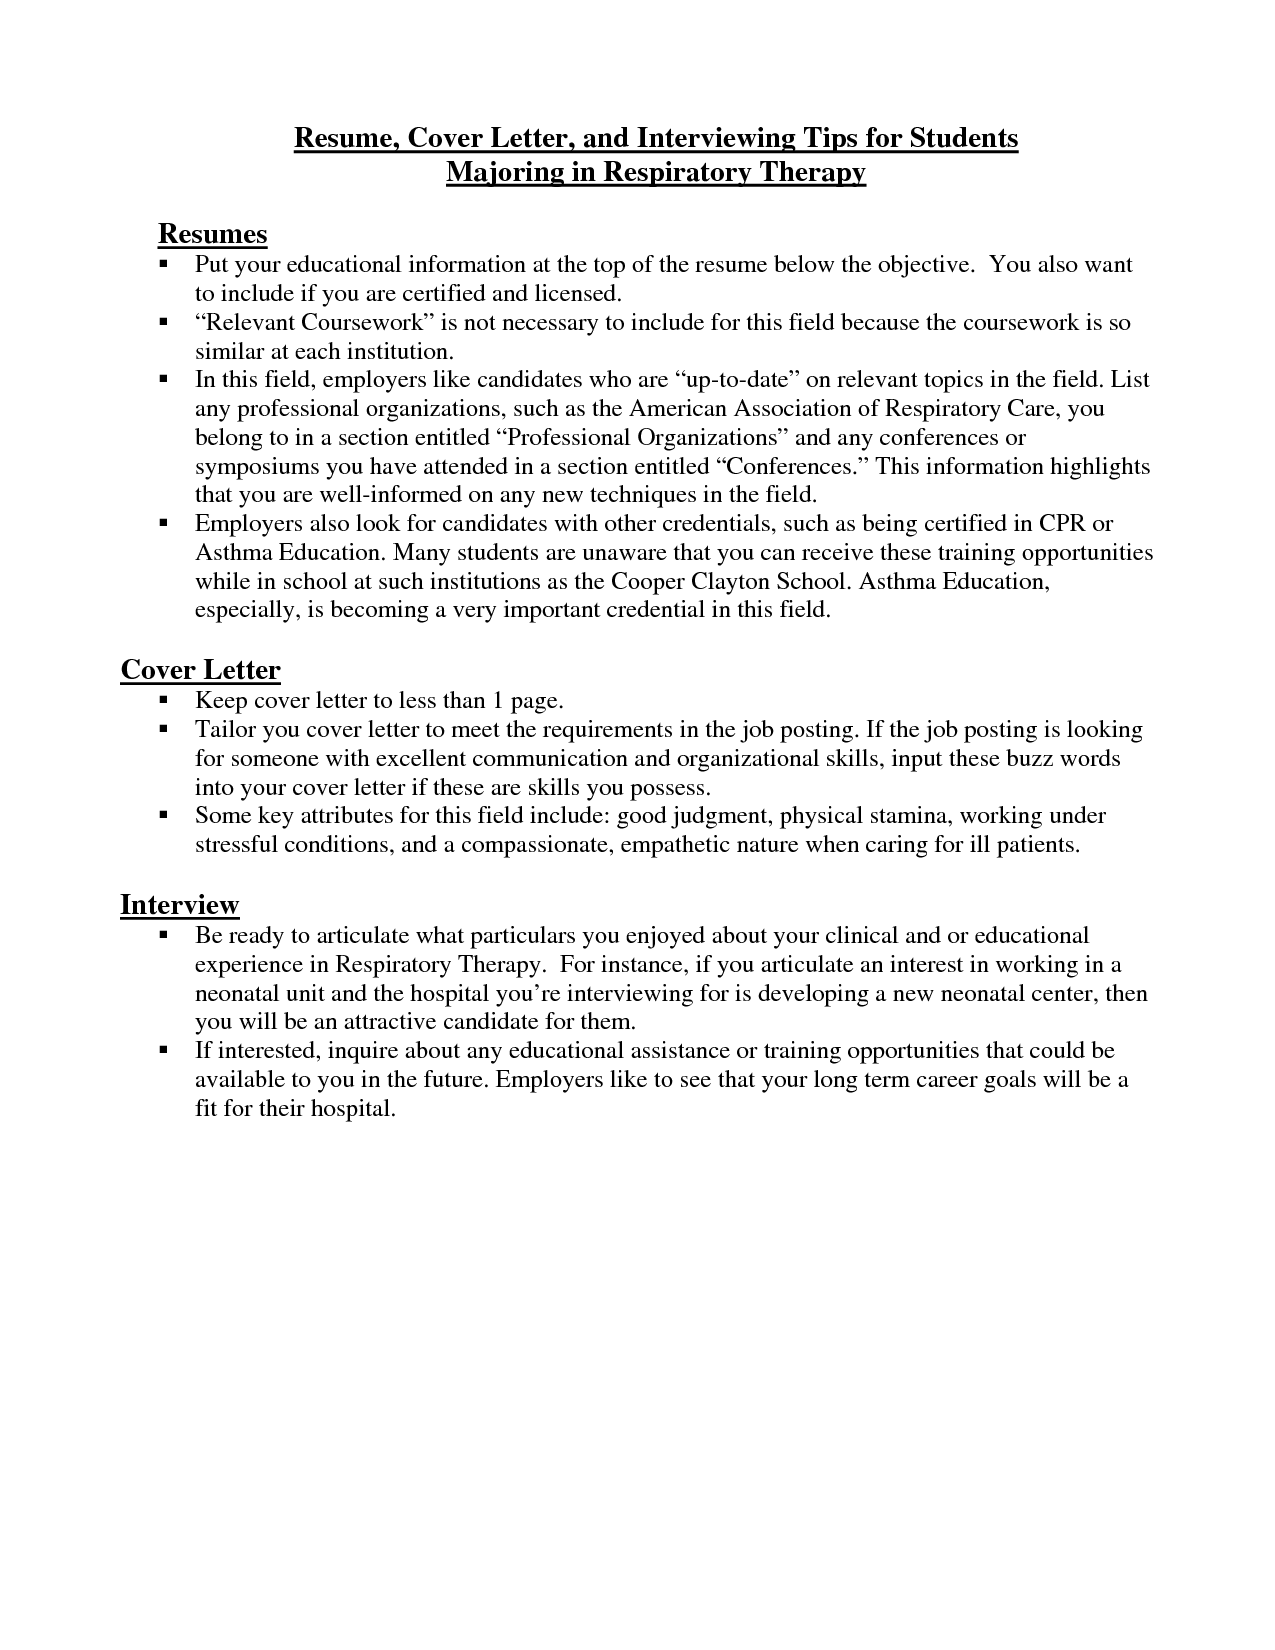 respiratory therapist cover letter resume cover letter and interviewing tips for students majoring - Counseling Cover Letter